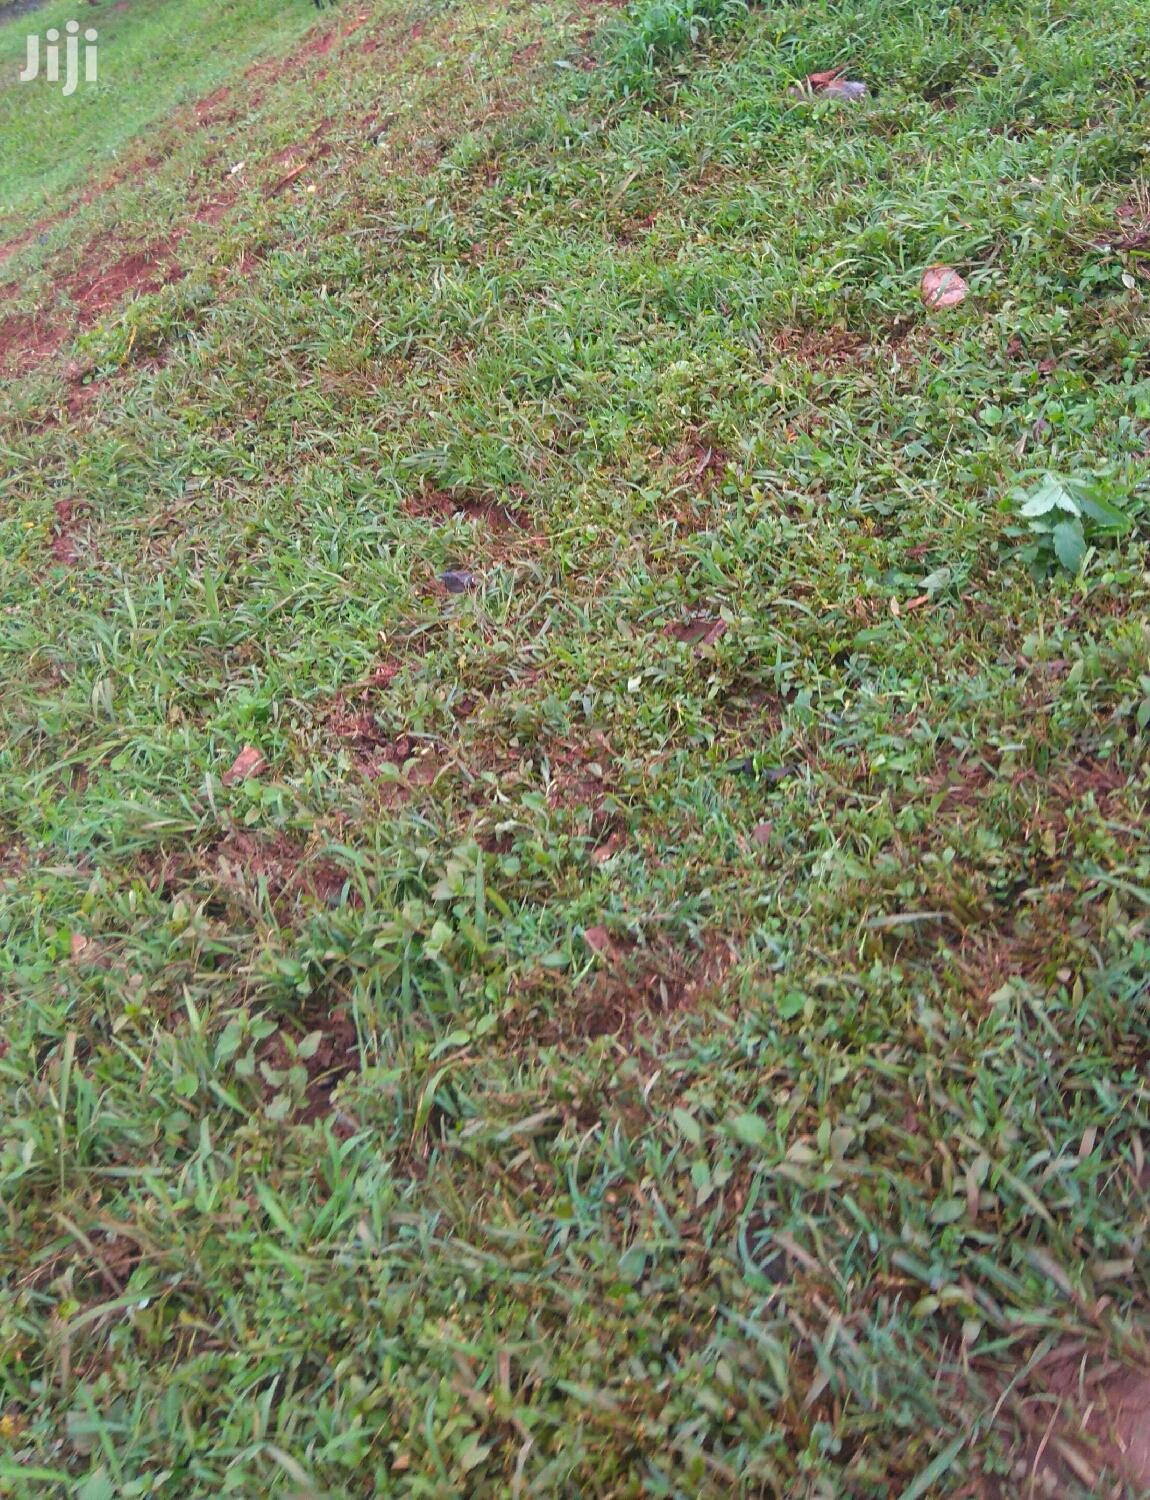 1 Acre Land Available in Kiwatule for Sale